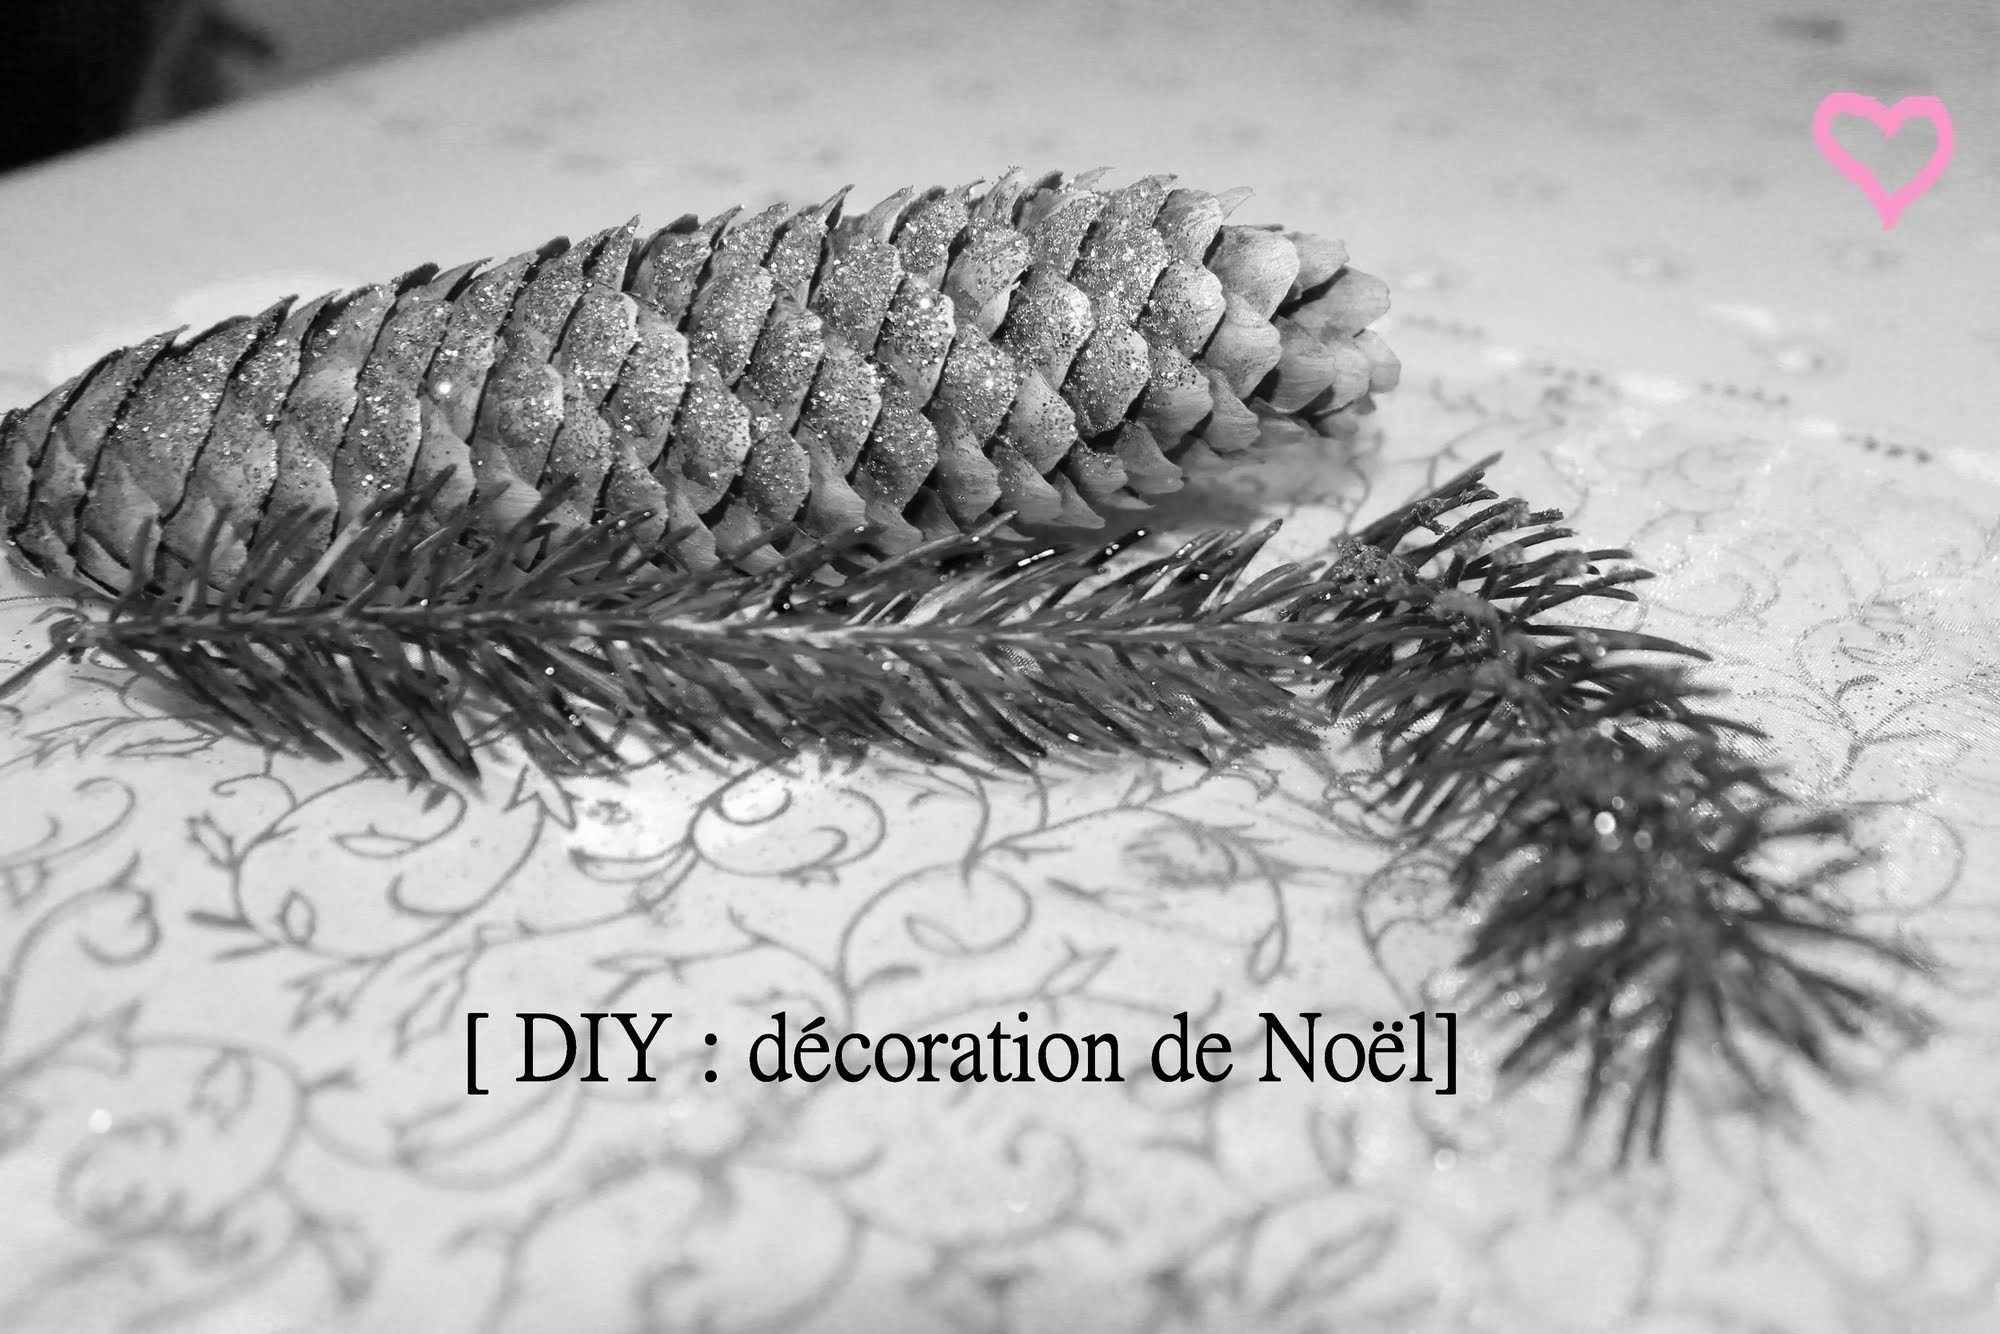 [ DIY n°1 ] : décorations de Noël ☃